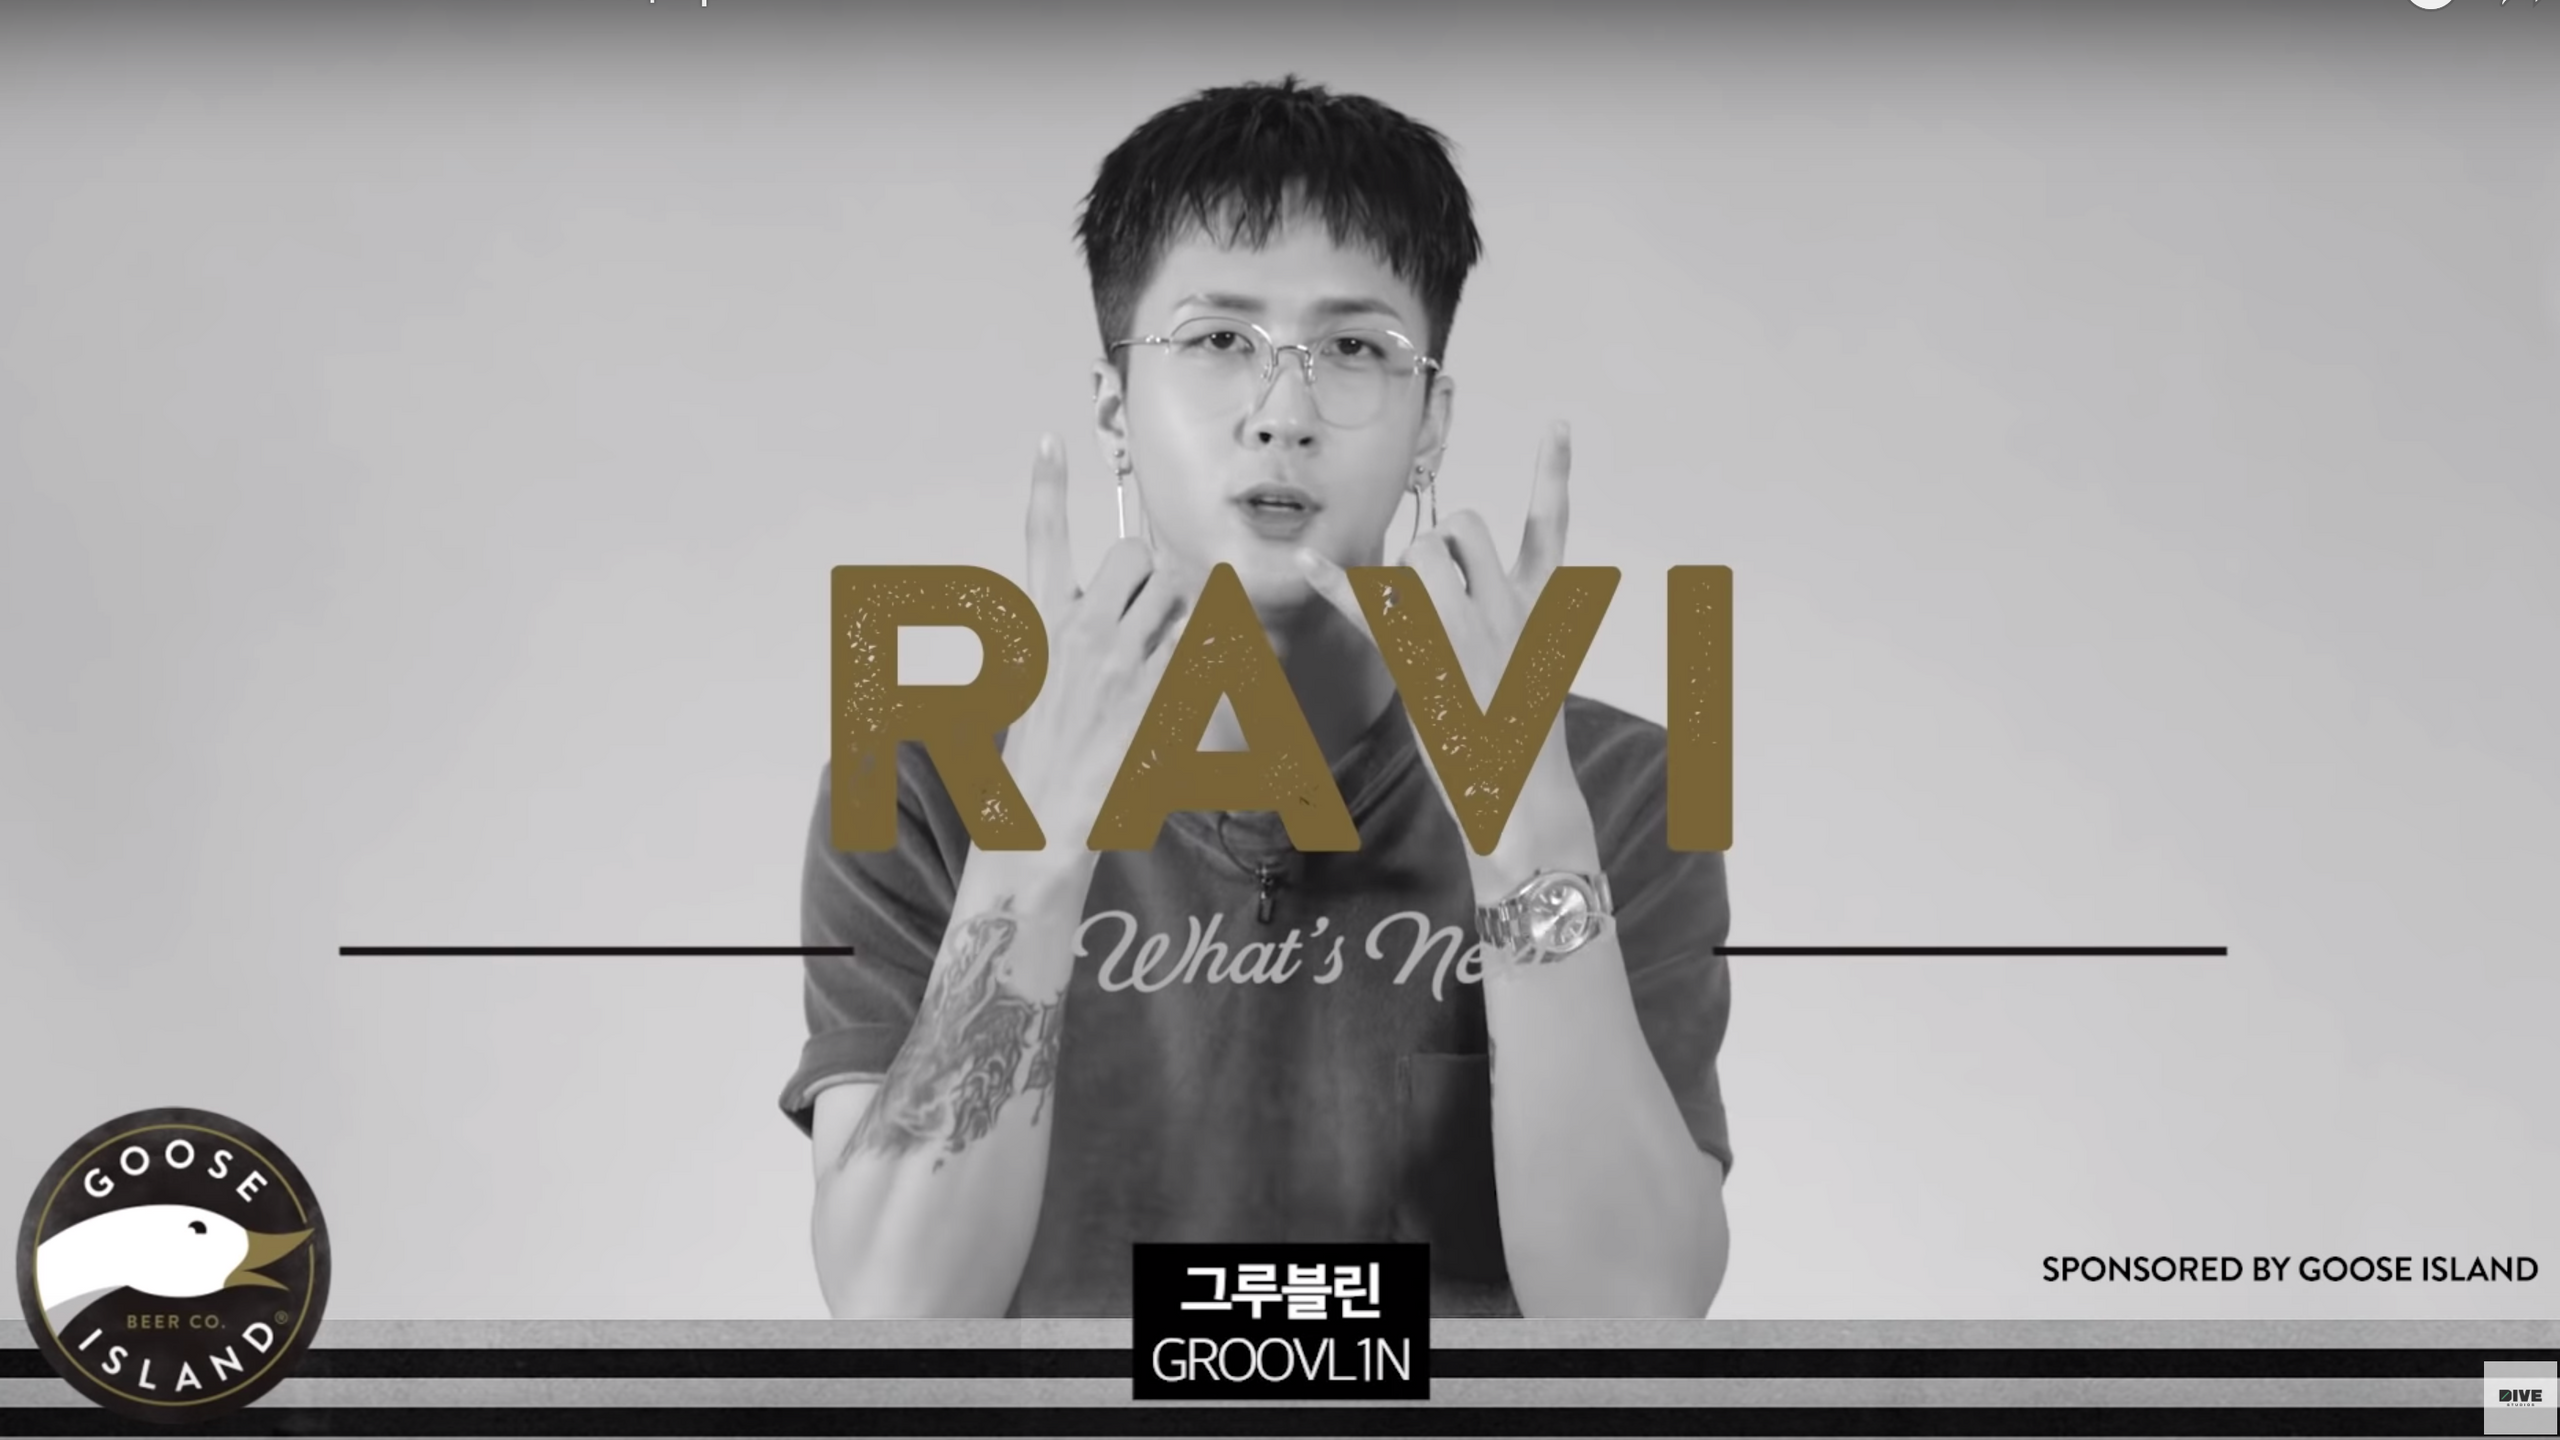 Ravi in Cheers to What's Next